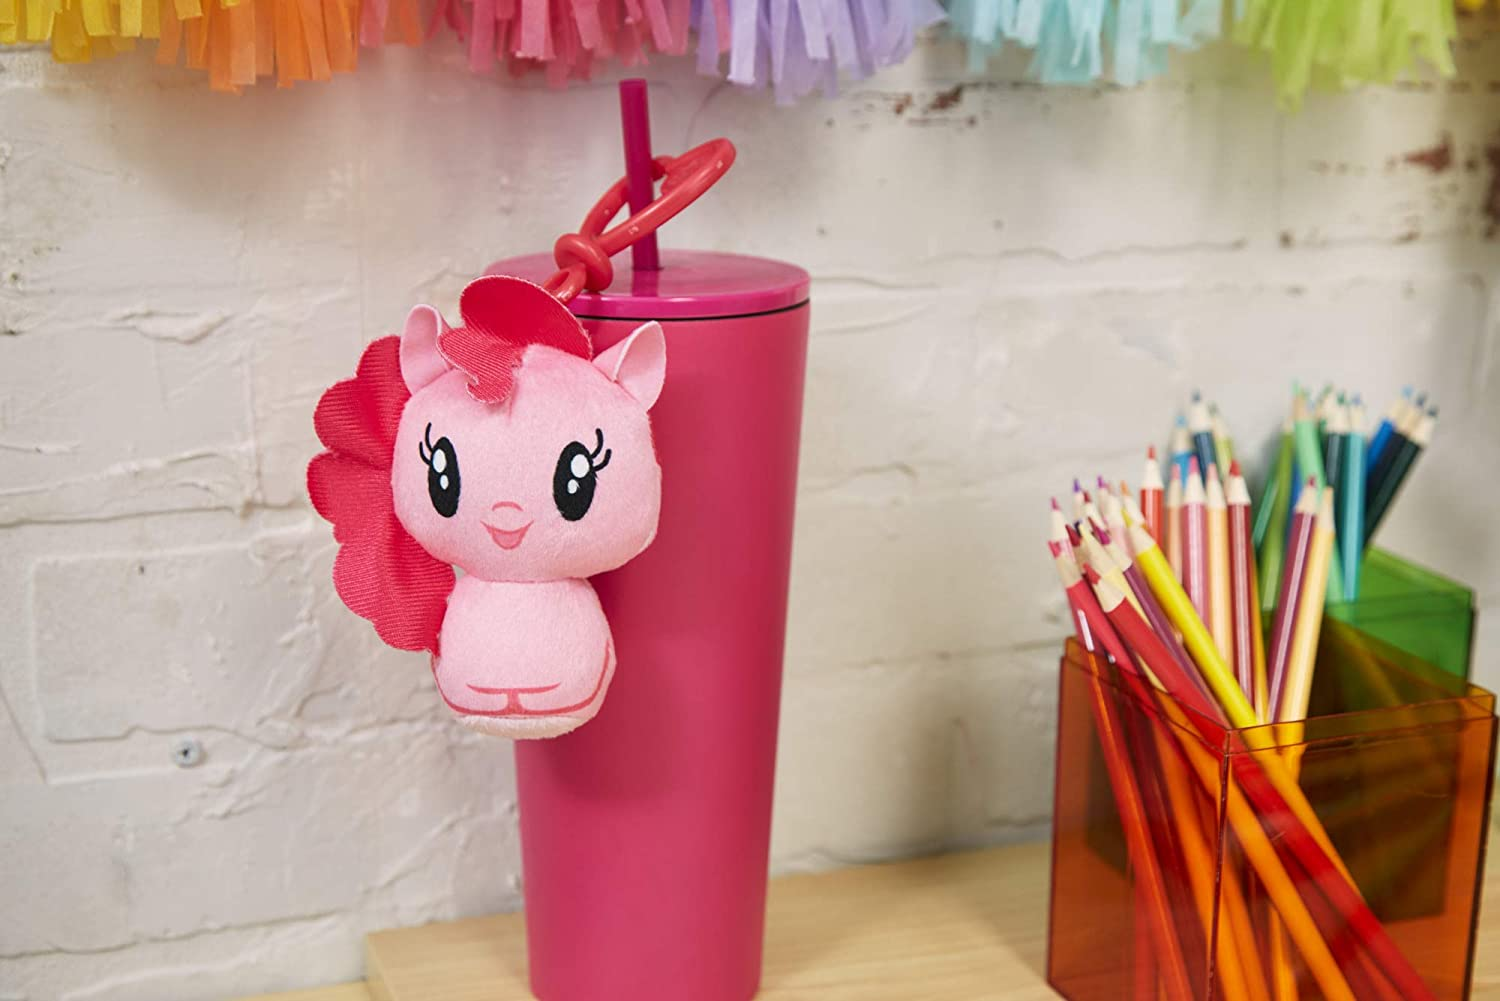 MLP Cutie Mark Crew Pinkie Pie Pony Plush Toy Clip 3